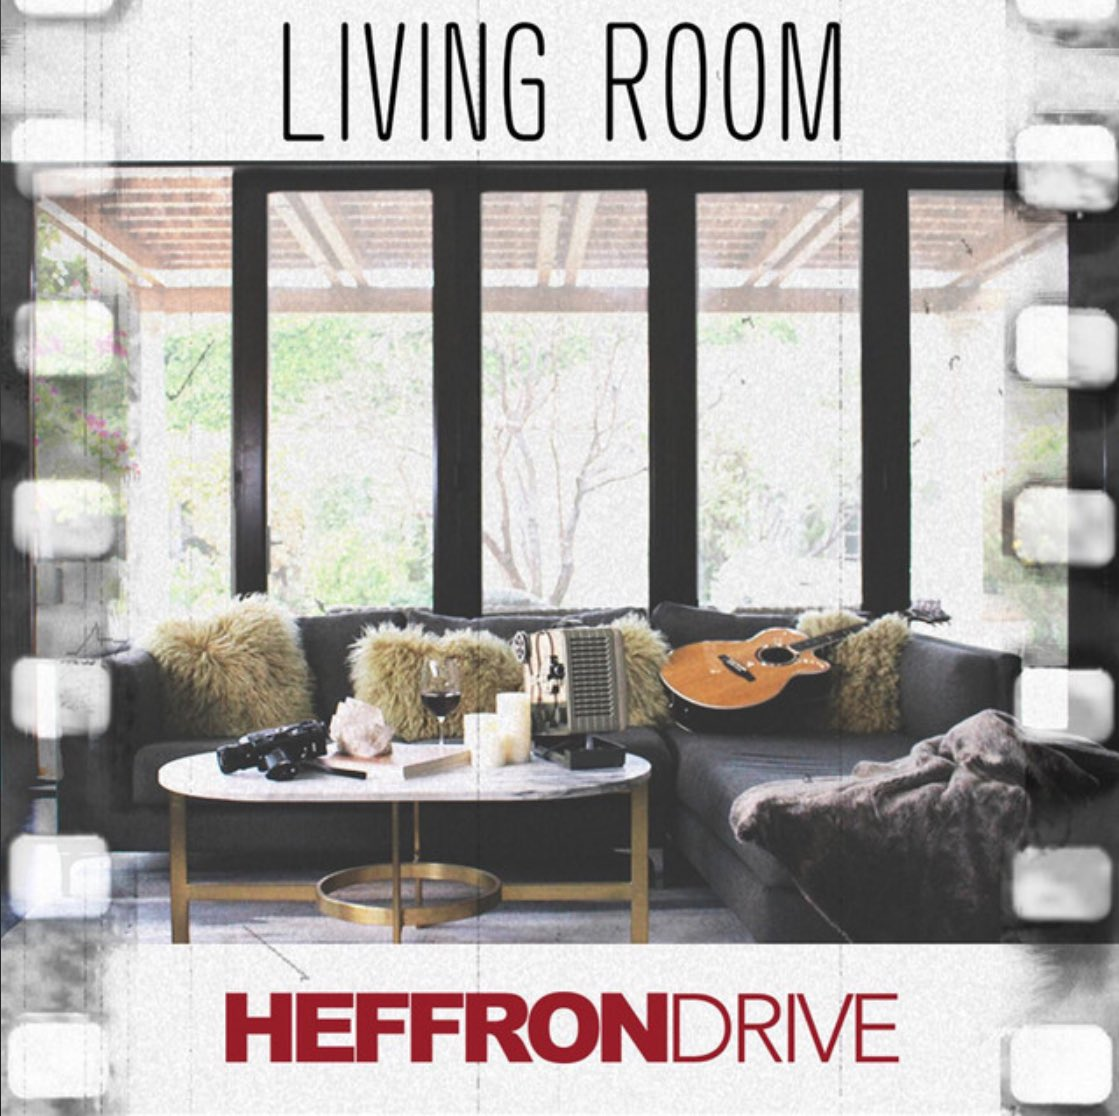 Livingroom latest news breaking headlines and top for Living room jake miller